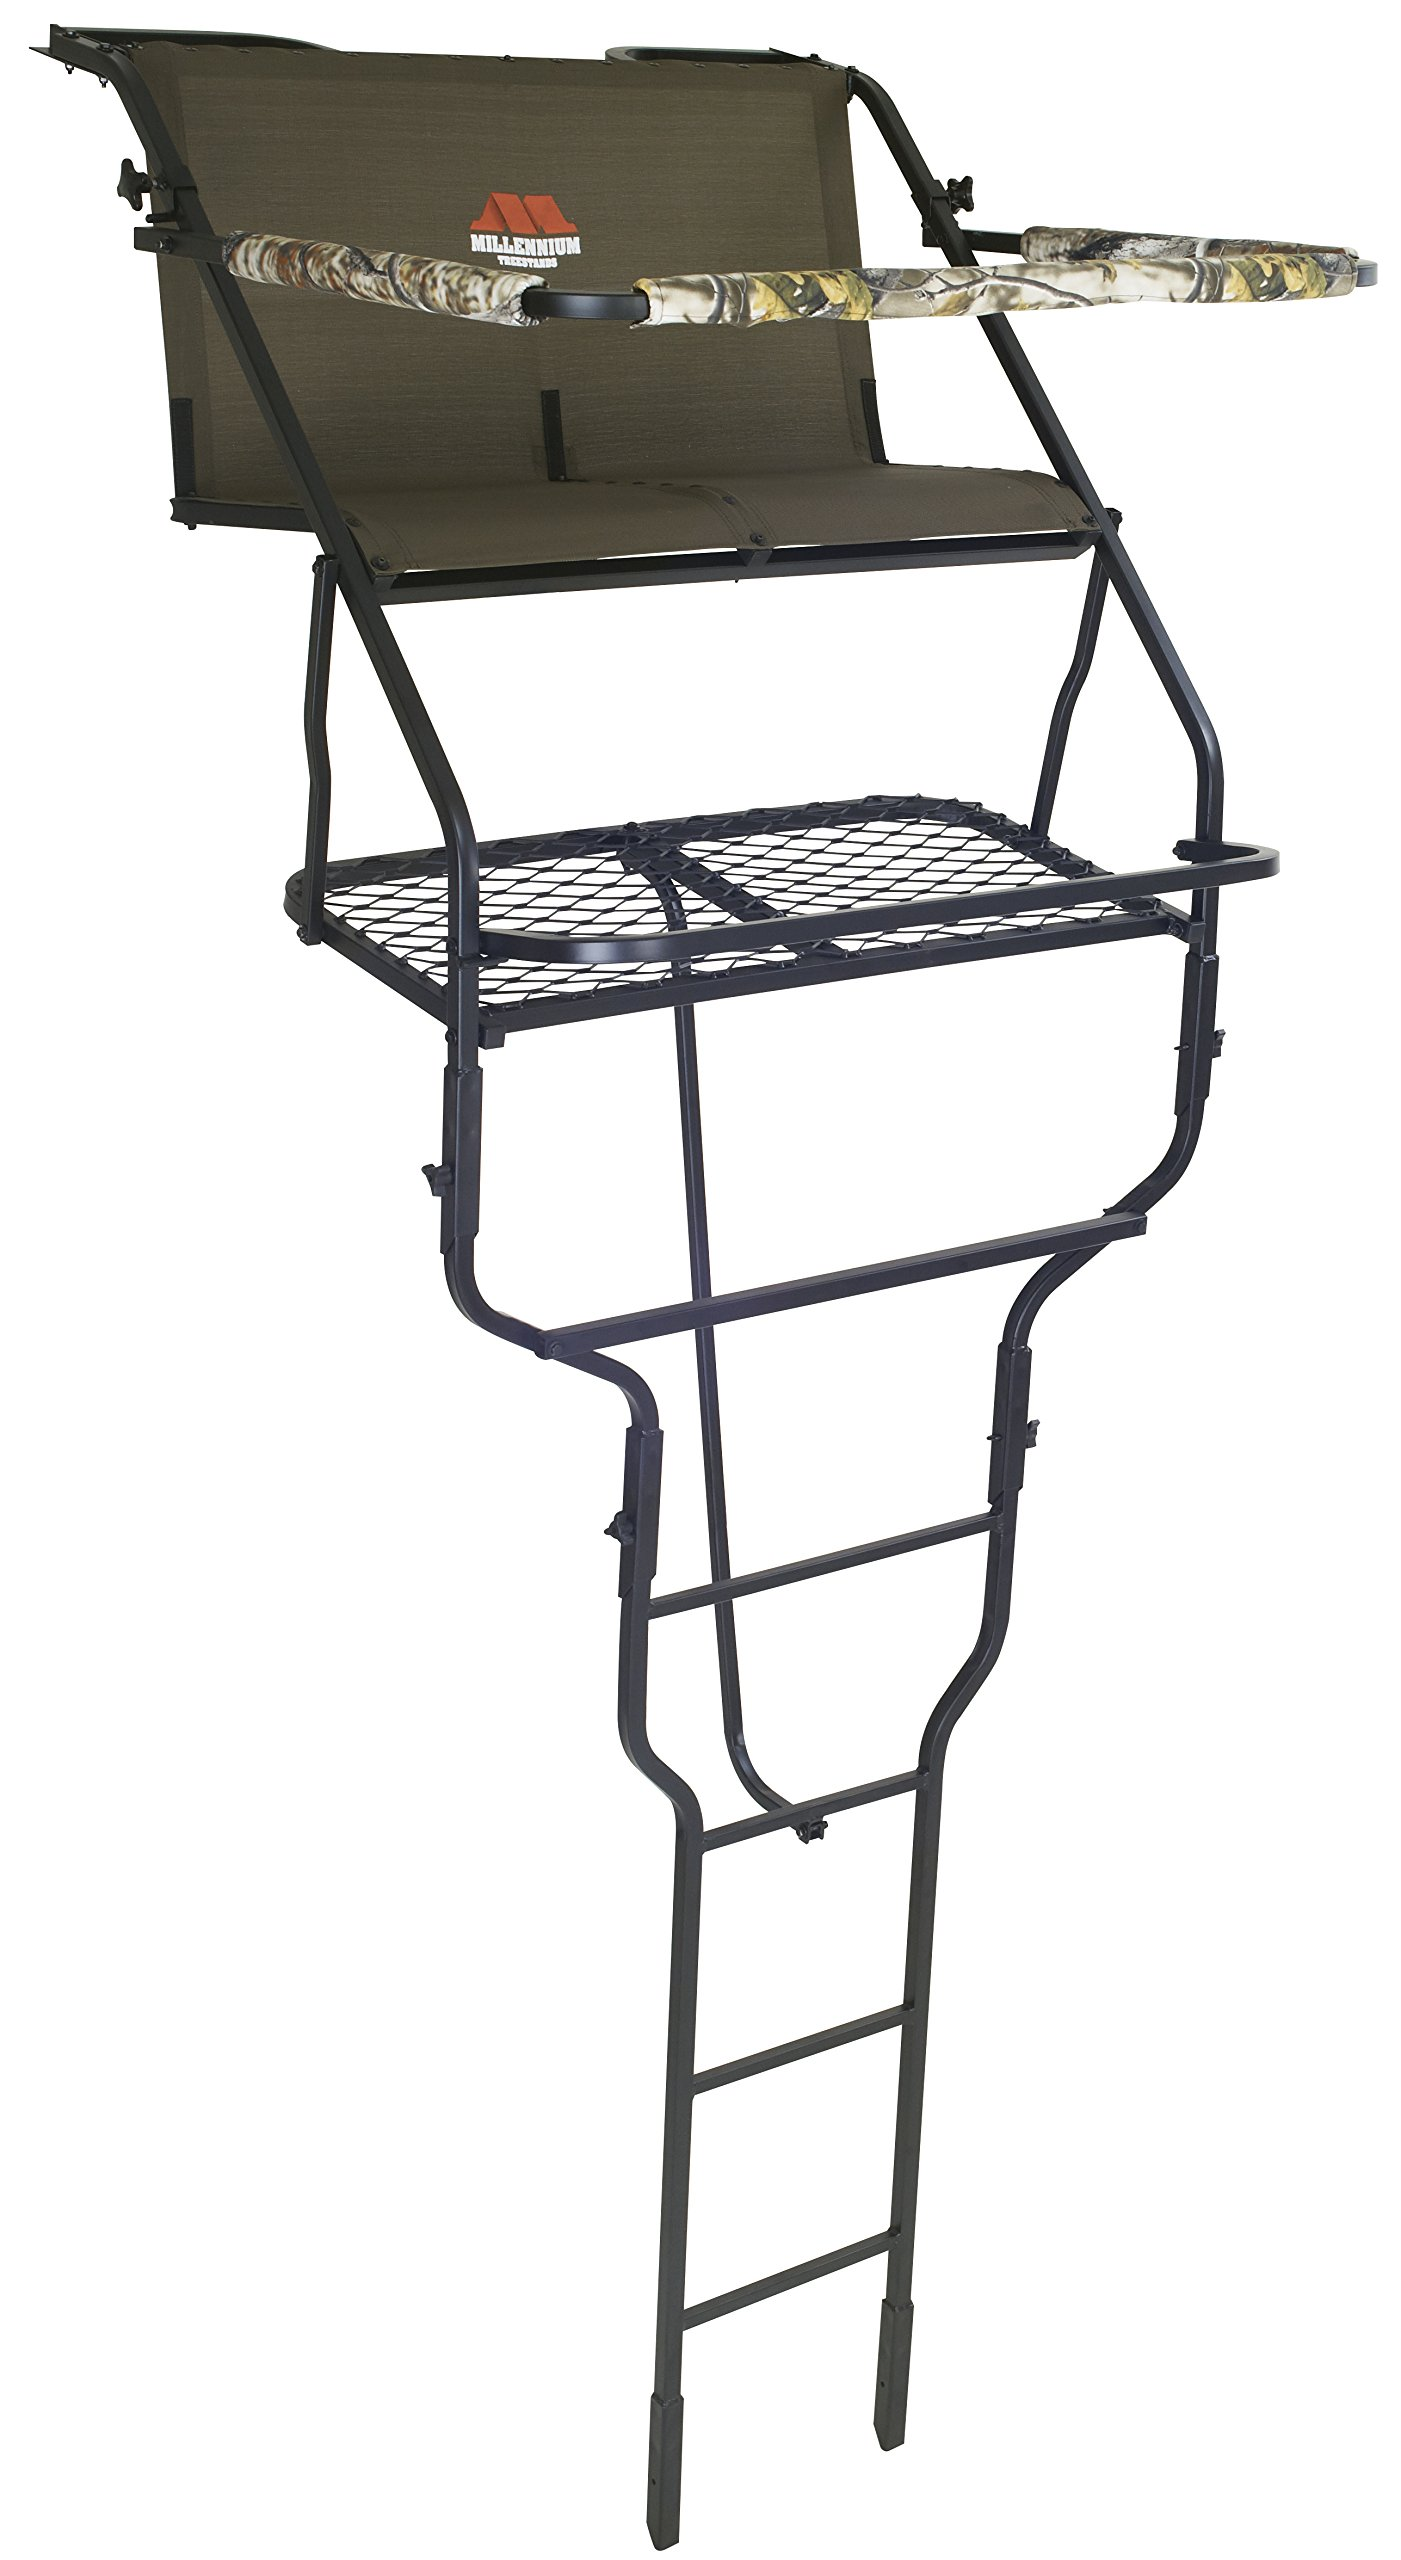 Millennium Treestands L200 18 ft. Double Ladder Stand